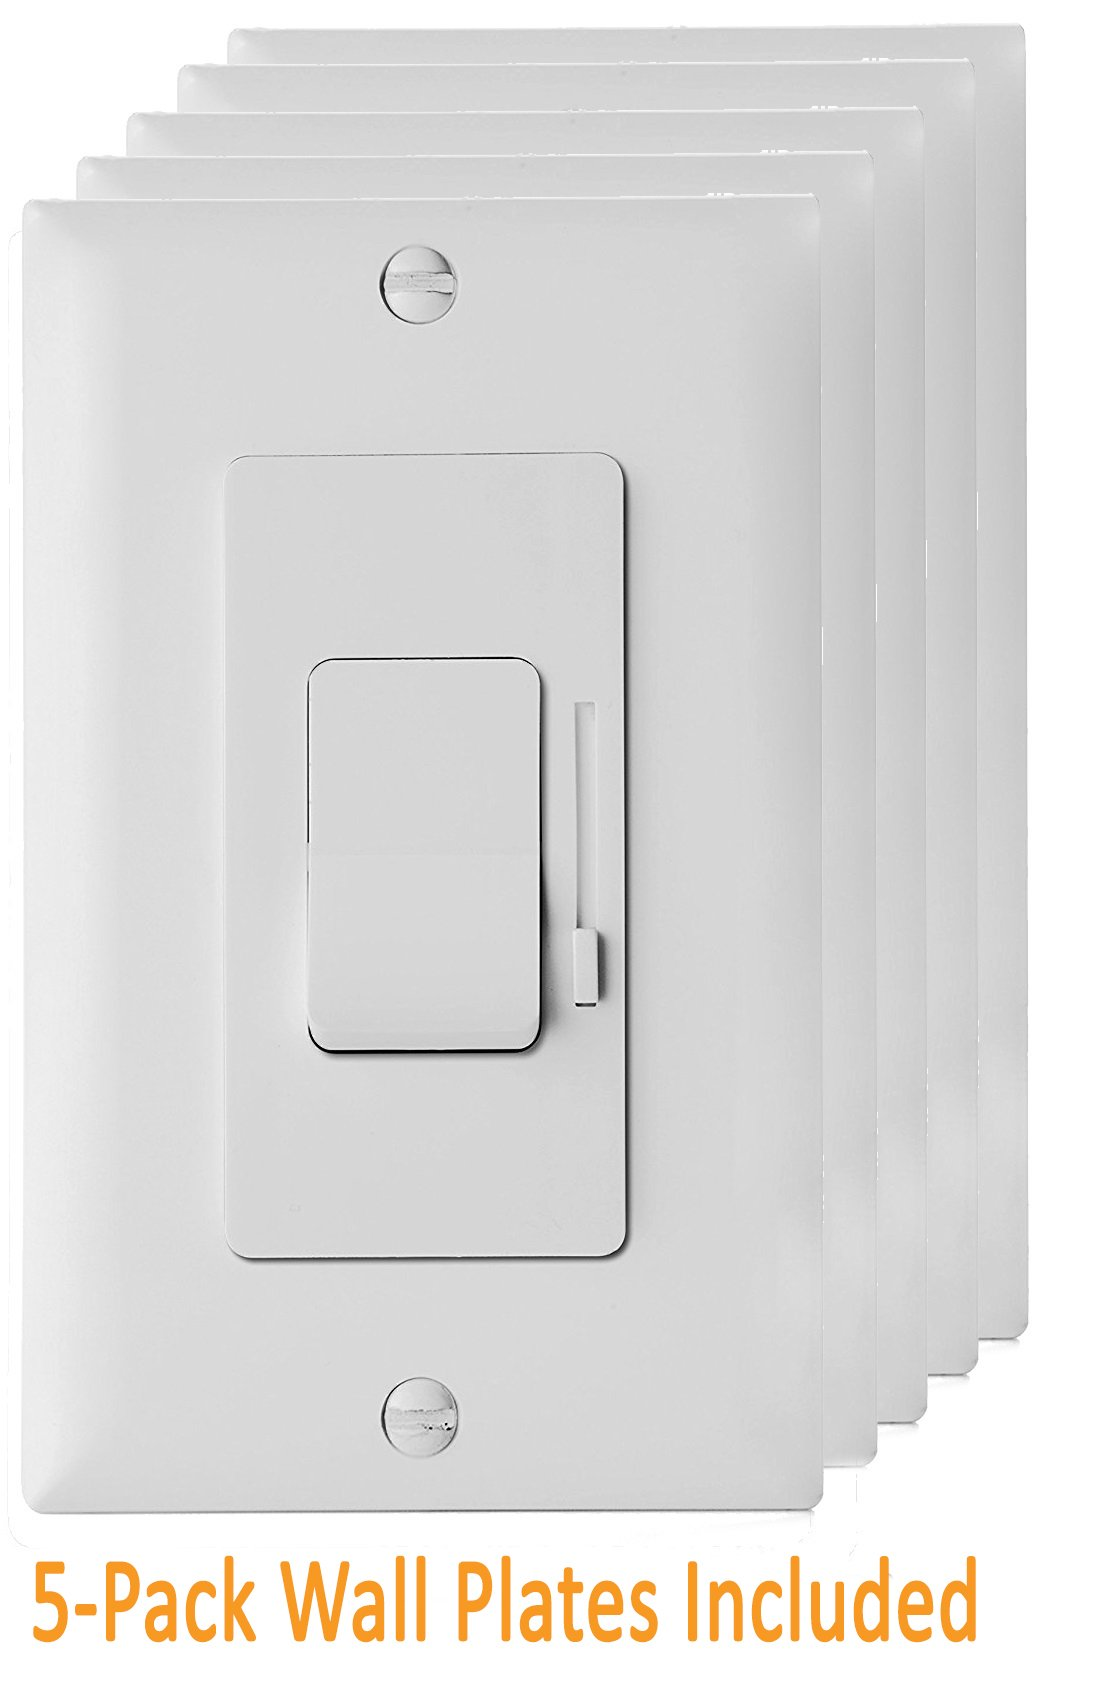 Enerlites LED Dimmer Switch 3 Way Dimmer Switch, Universal Lighting Control, Dimmer Switch for LED lights, CFL, Incandescent, Halogen, Wall Plates Included, 51300 White - 5 Pack